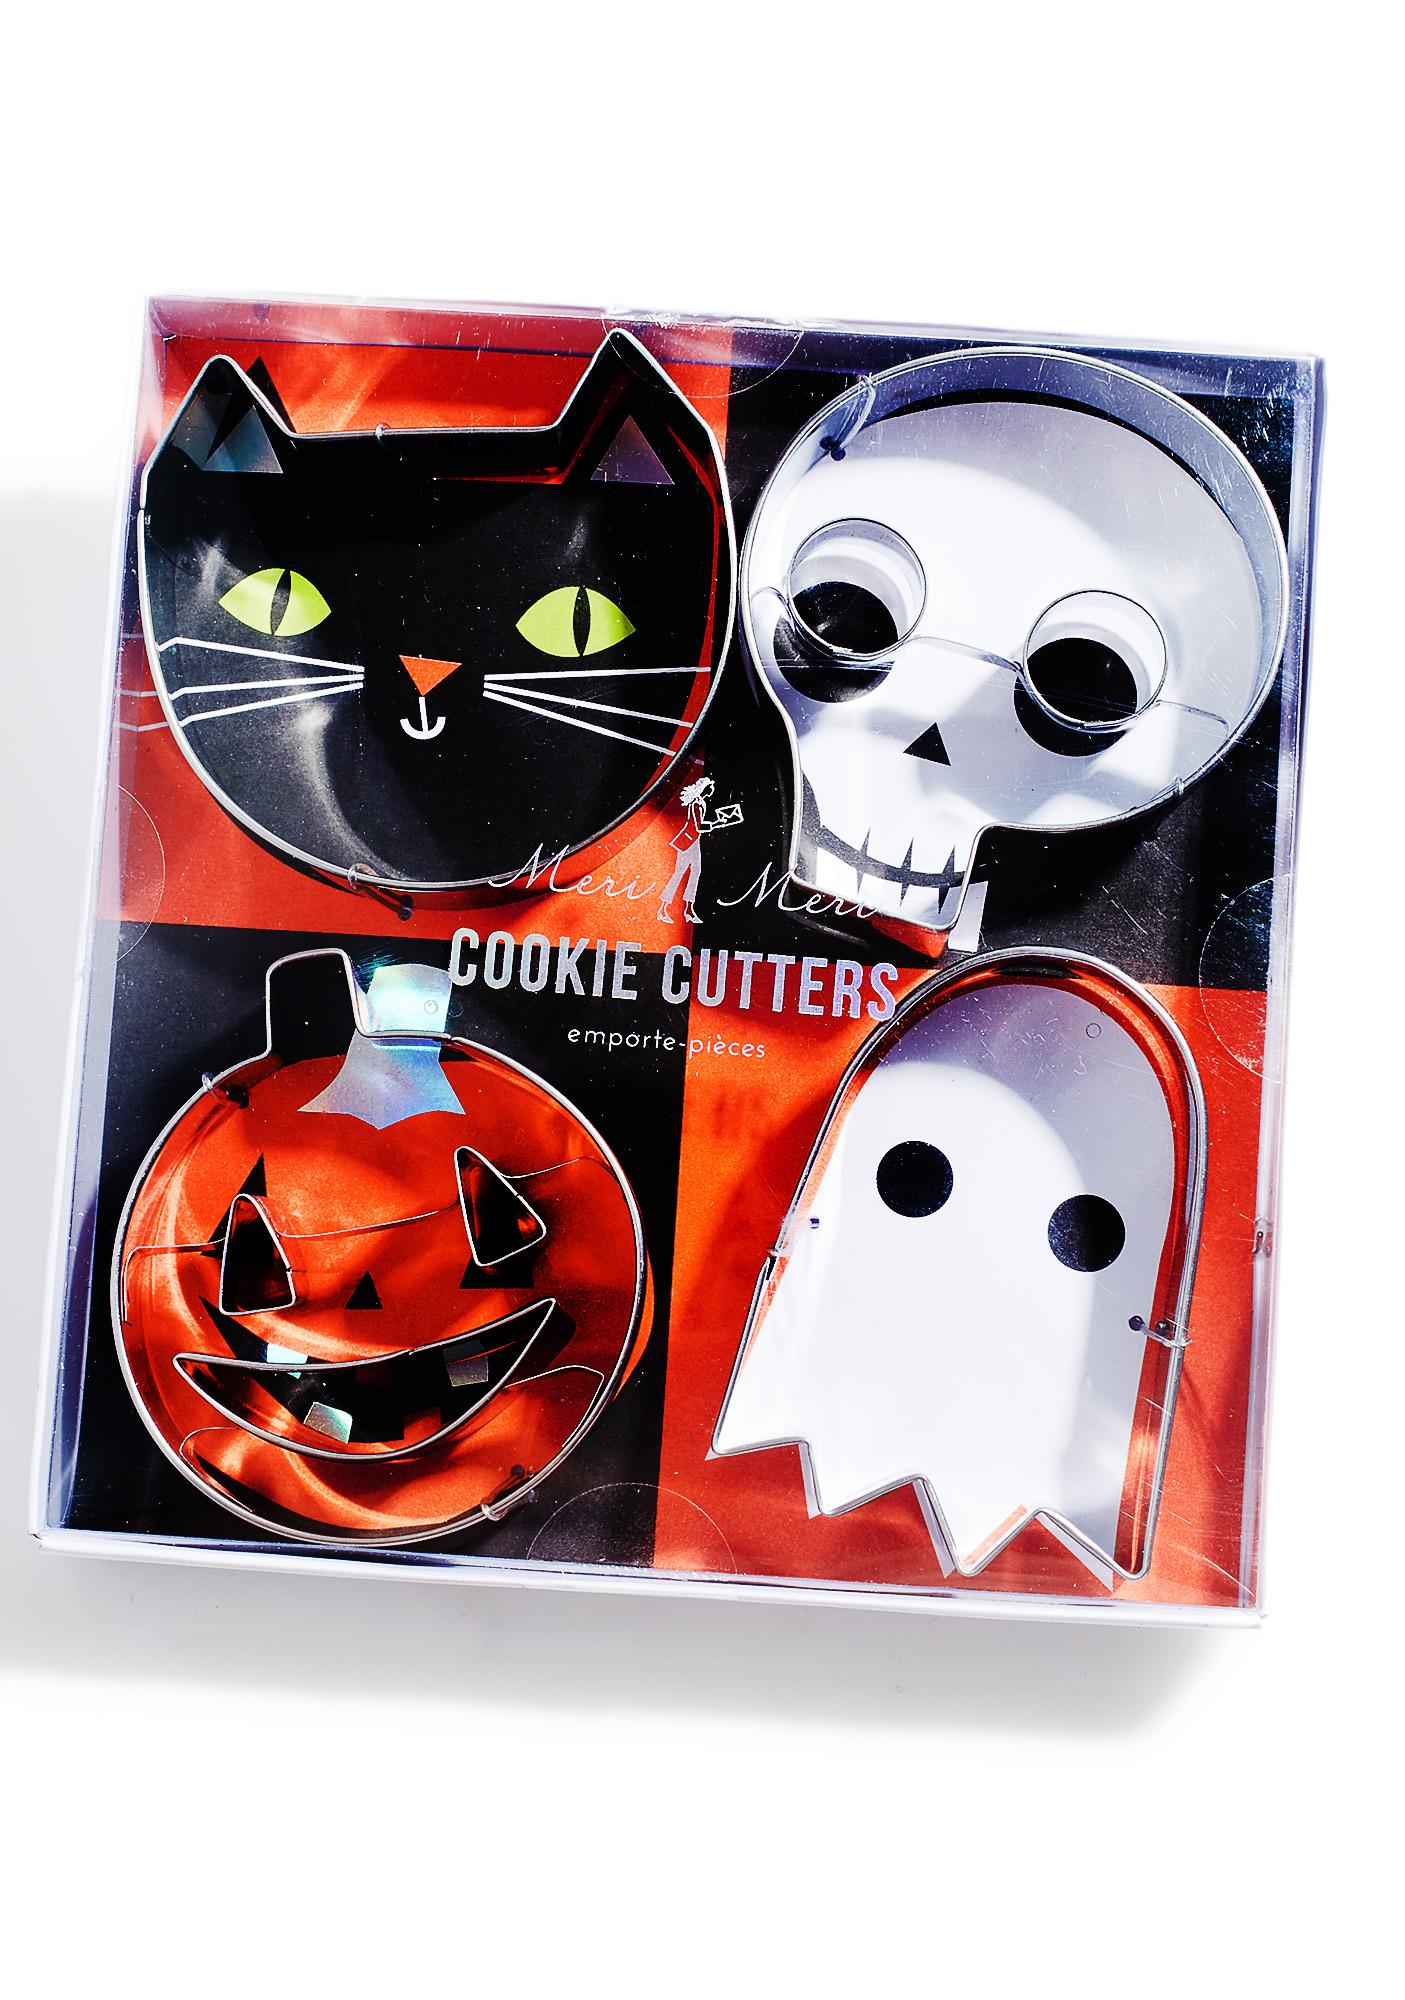 Supa Spooky Cookie Cutters